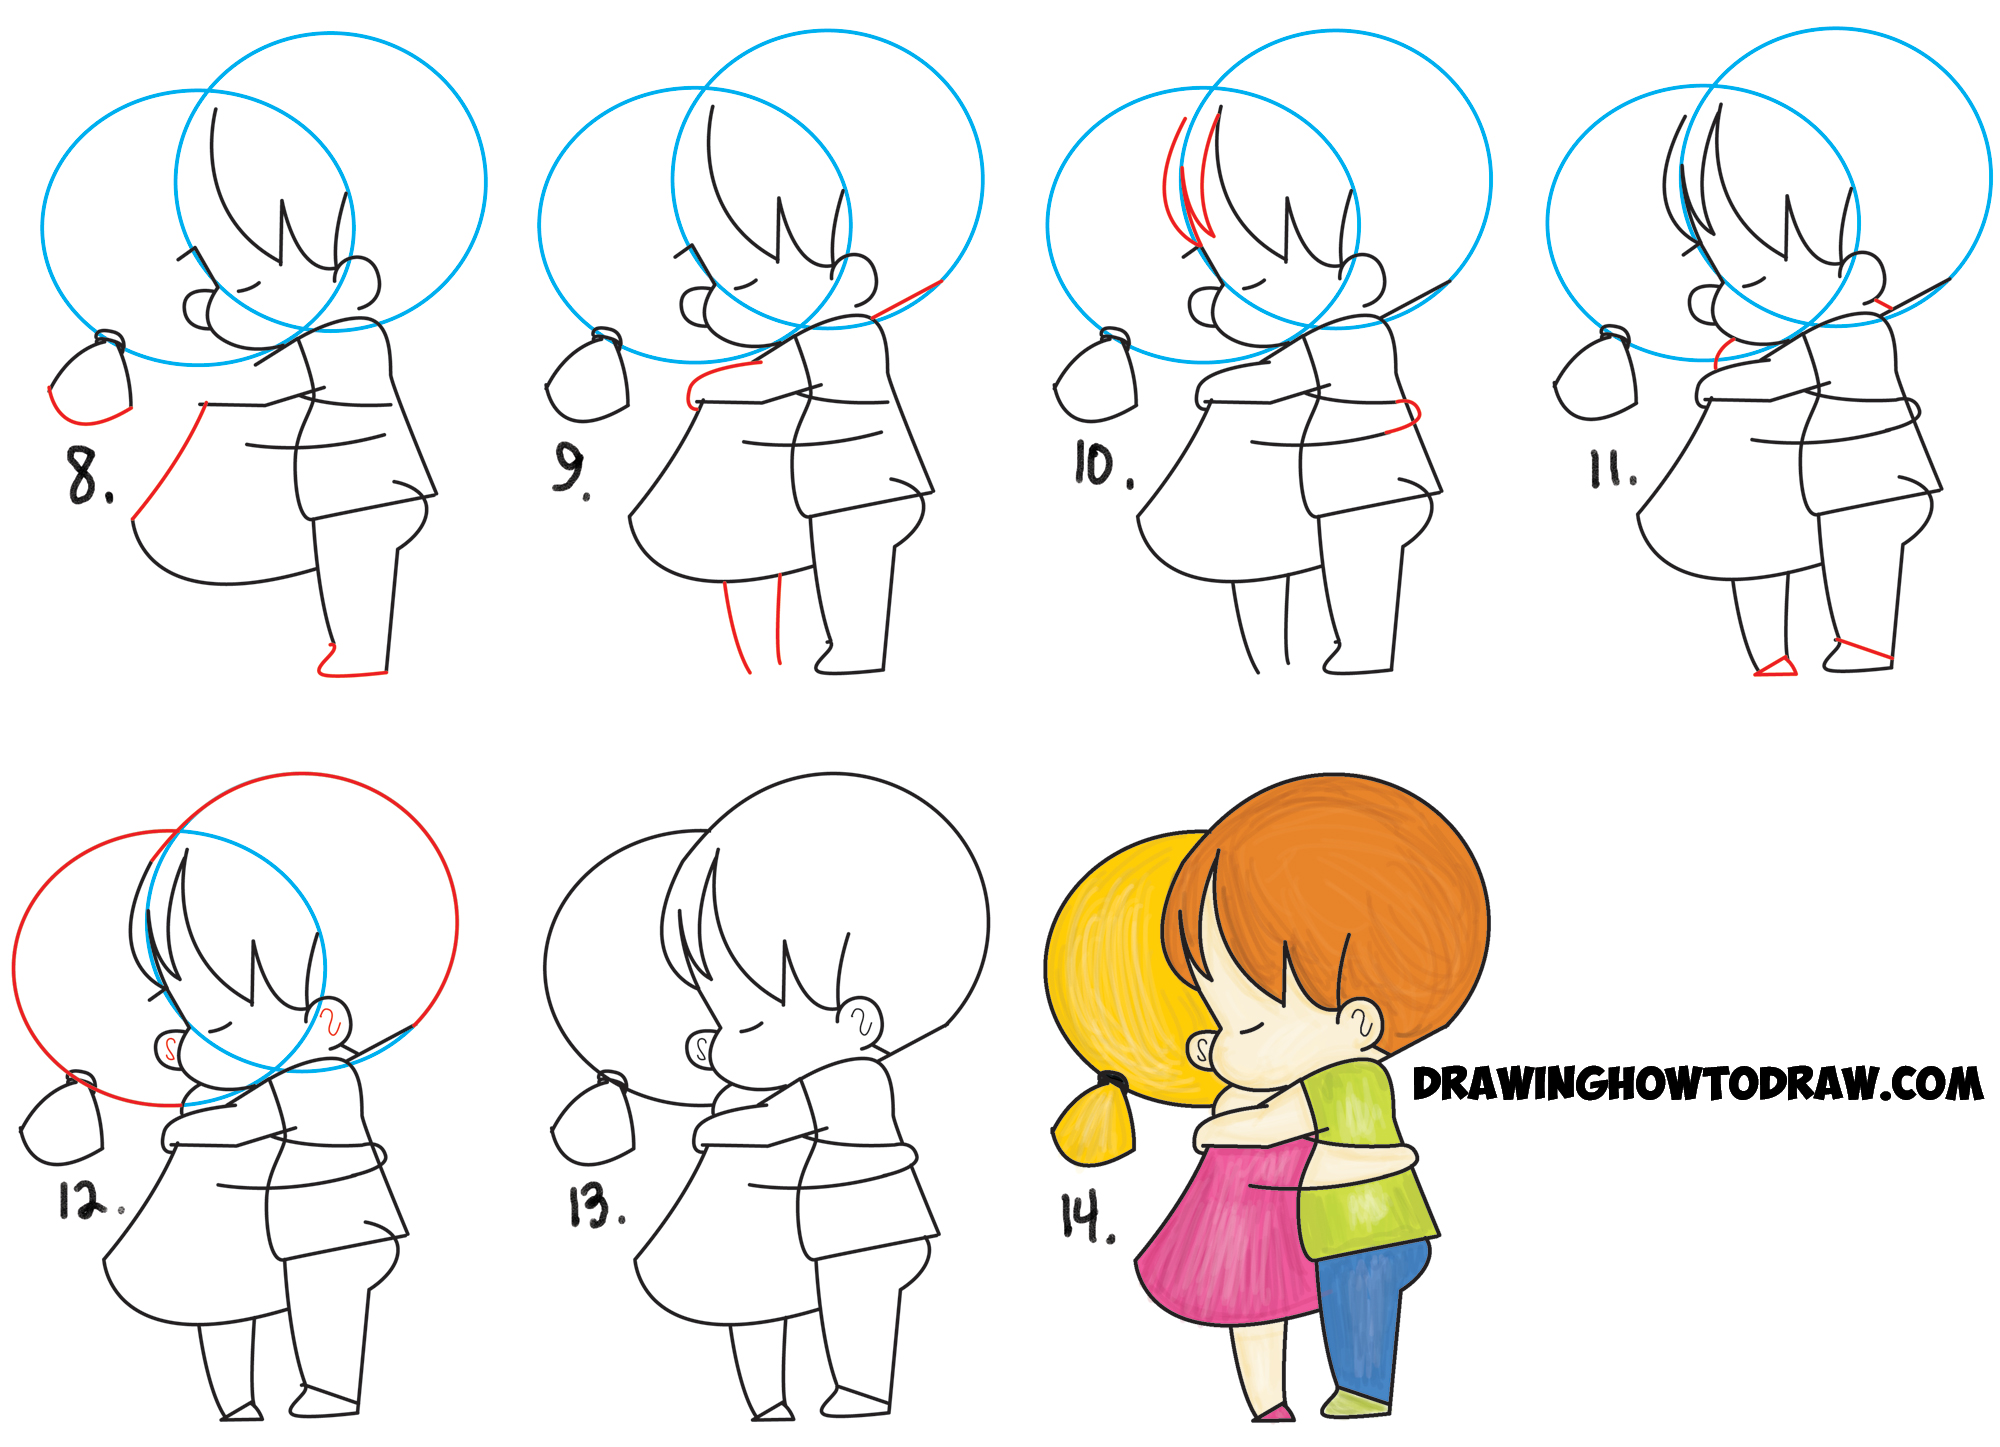 How To Draw Chibi Girl And Boy Hugging